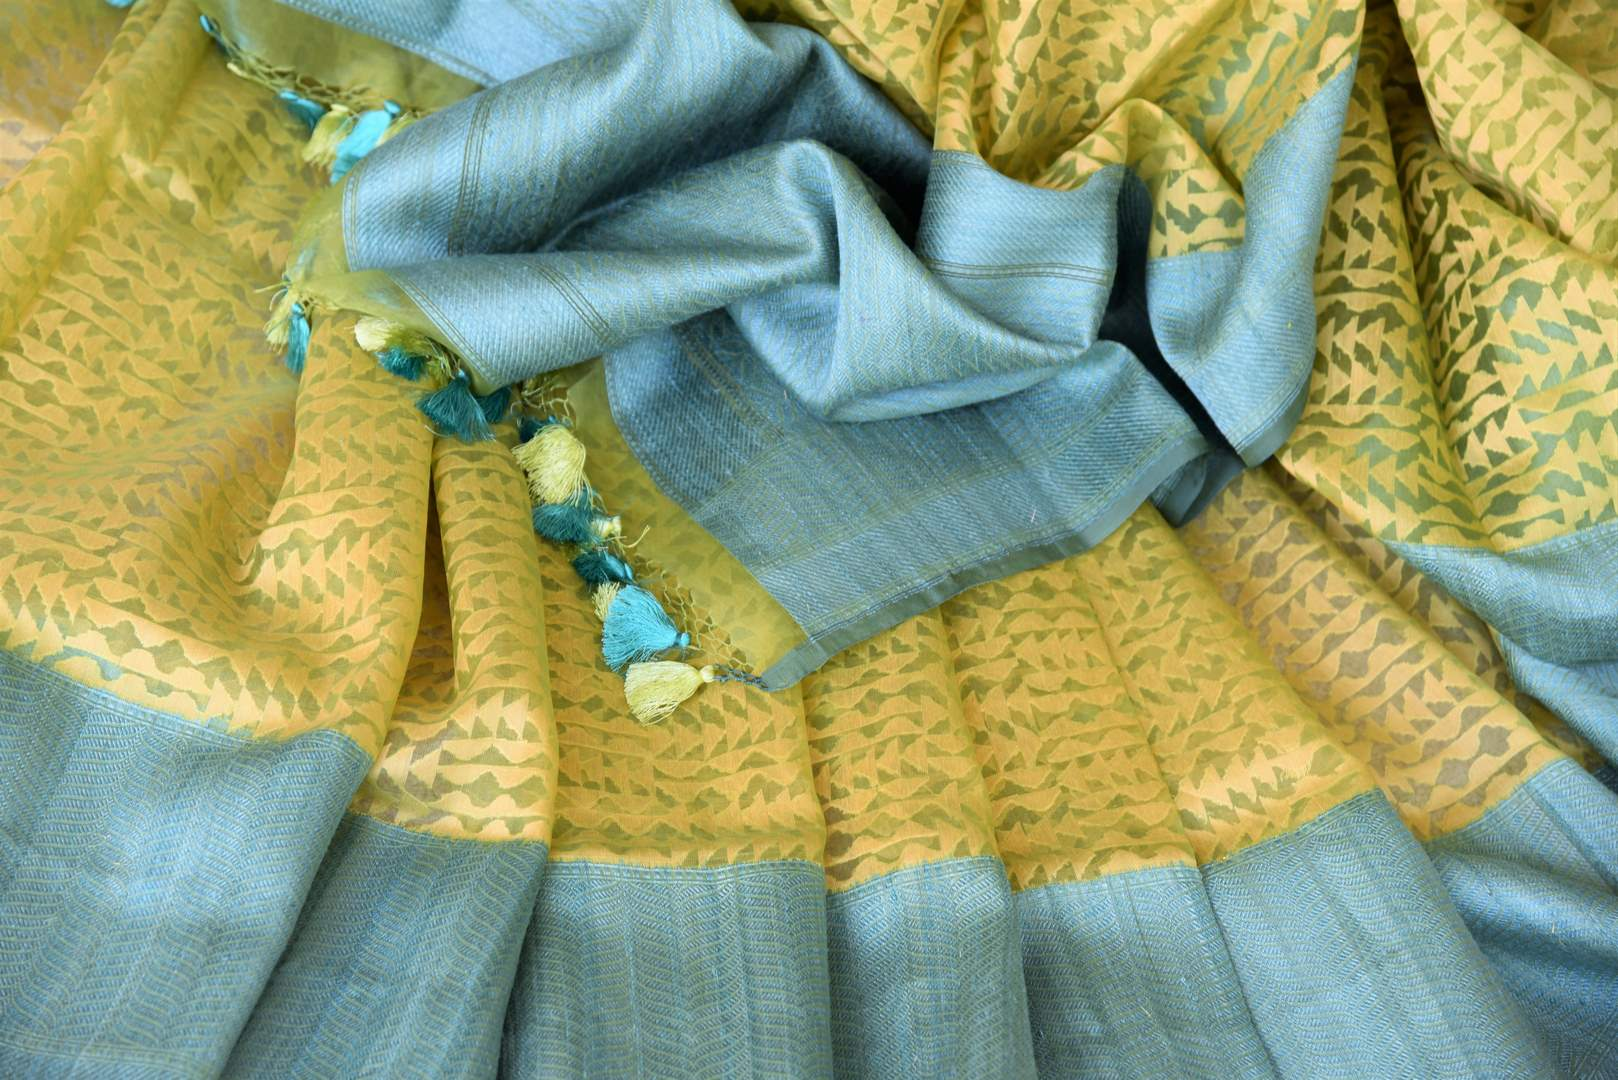 Serenade in solace in our yellow kora banarsi silk saree. The rustic blue border graces the wonderful facade of this silk sari, Style this stunning sari with a contrasting mint blue blouse with buta work. Shop handloom sarees, linen sari, chiffon sarees online or visit Pure Elegance store, USA.-details